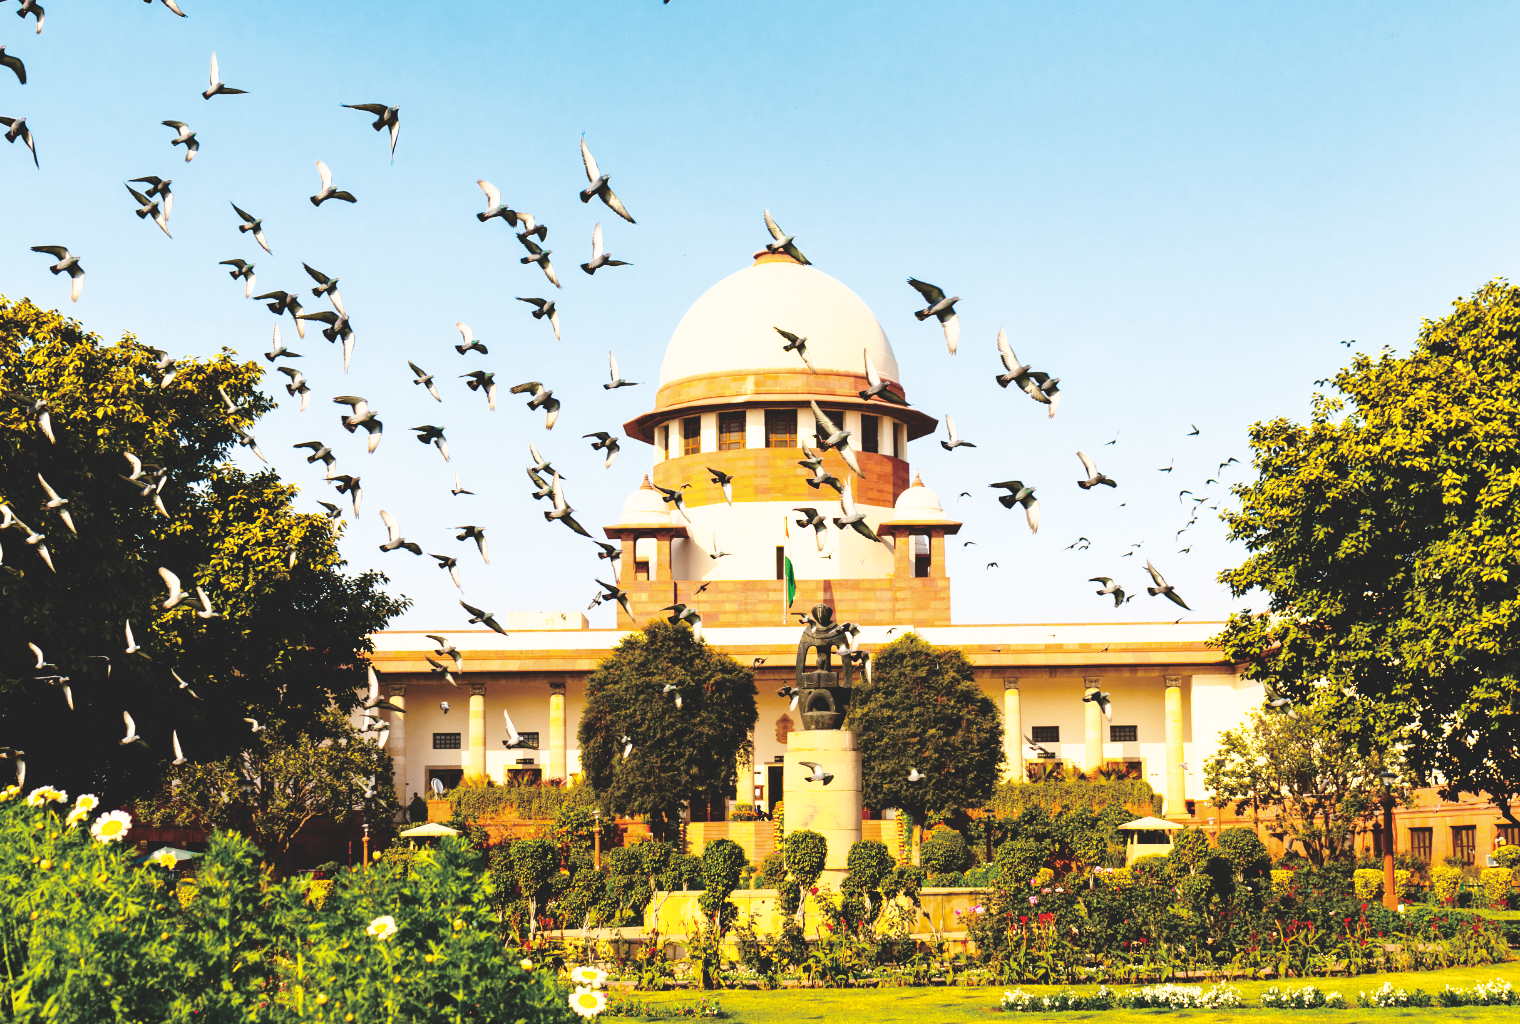 SC asks Centre to consider adopting 'one nation, one ration card' scheme during lockdown.